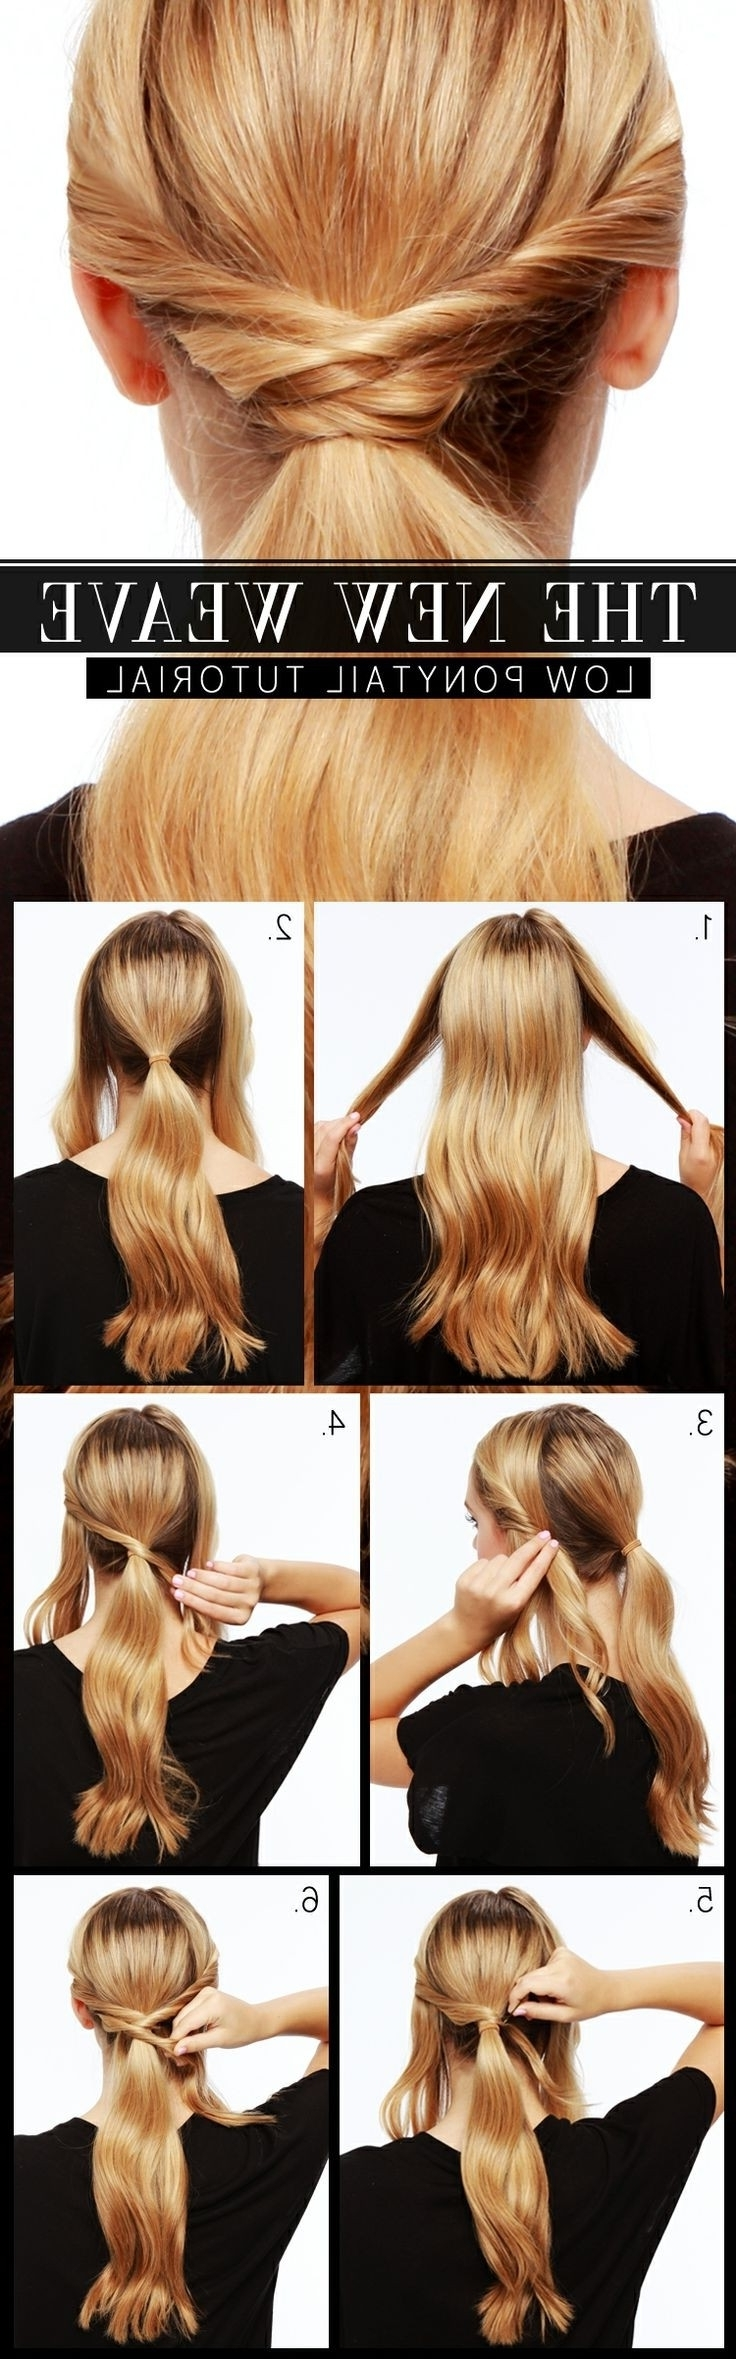 16 Simple And Chic Ponytail Hairstyles – Pretty Designs Pertaining To Newest Two Toned Pony Hairstyles For Fine Hair (View 17 of 20)